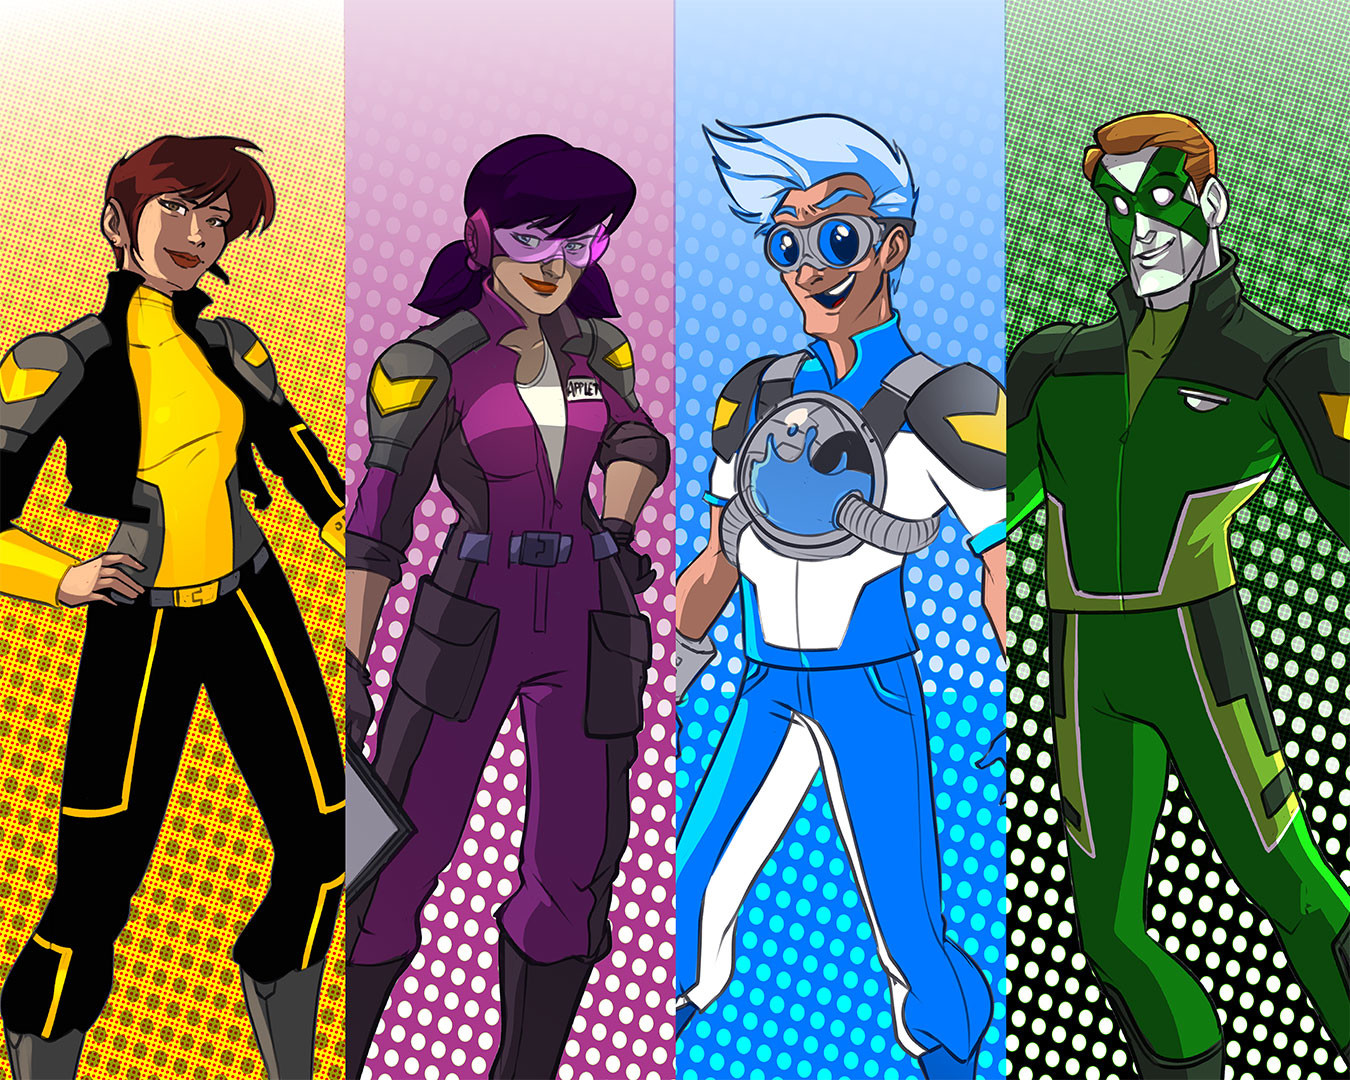 The cast of characters, designed based on the Microsoft Data Insight Product that they respresent. From left to right: Captain Martinez (Power BI), Appletta (PowerApps), Flox (Microsoft Flow), and Xander Cells (Microsoft Excel).